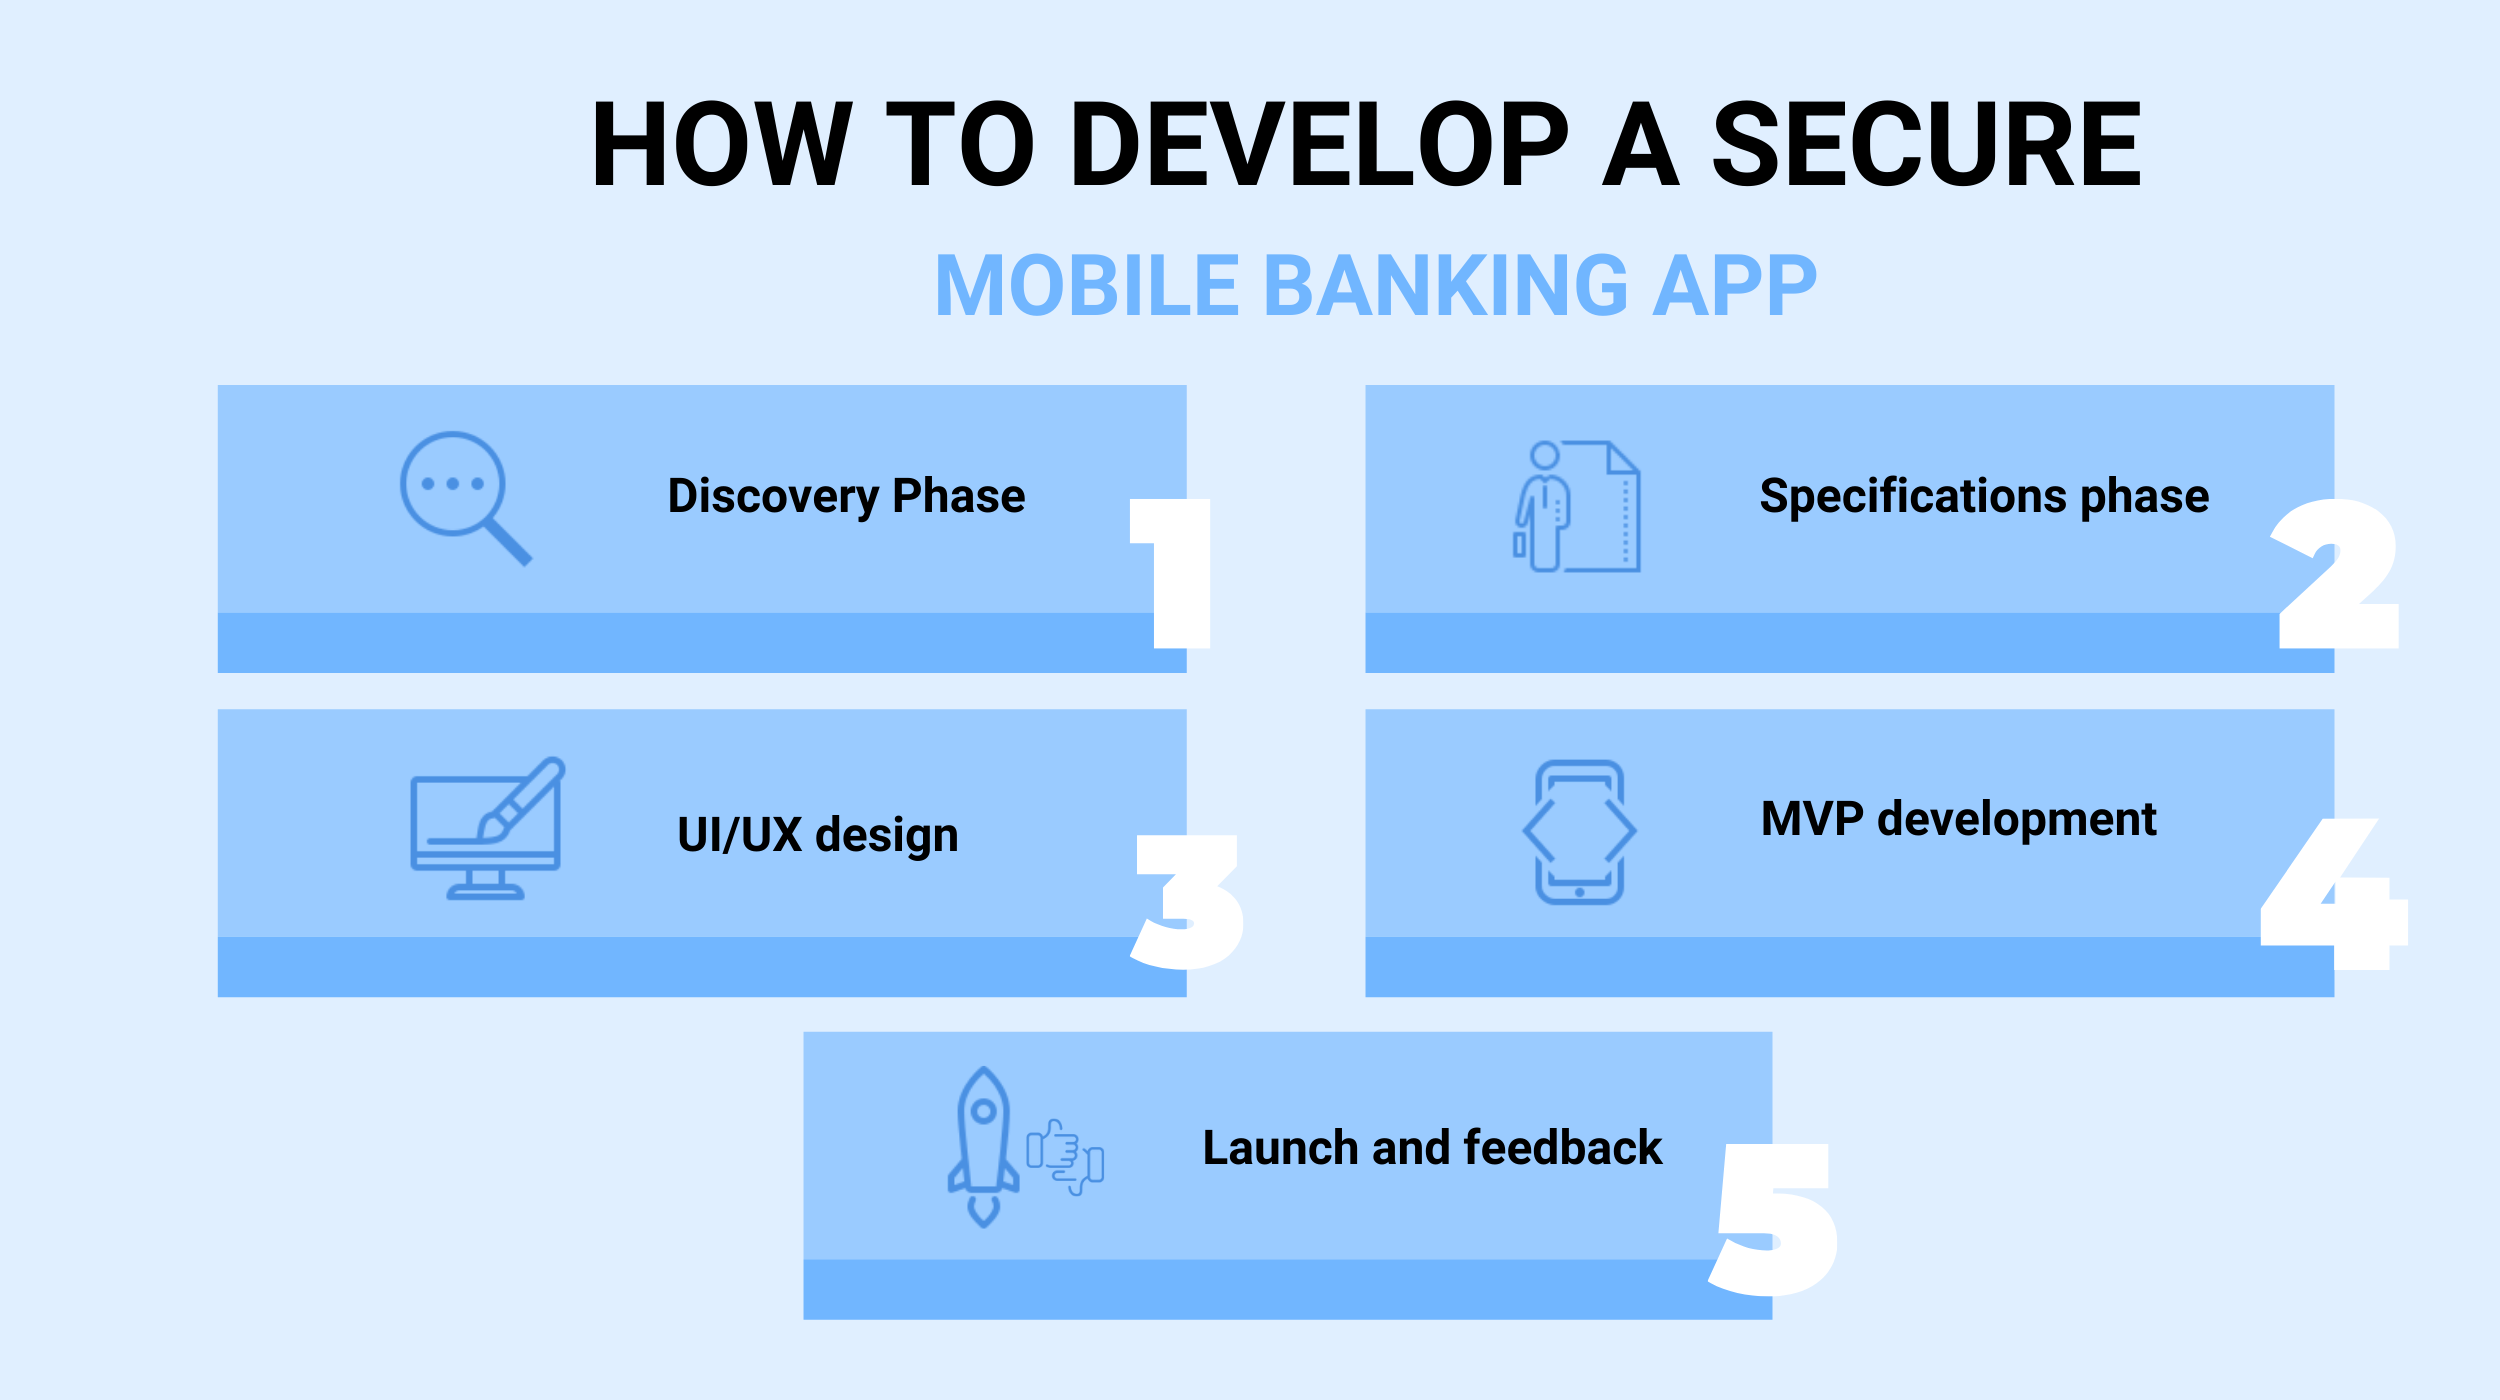 How to Develop a Secure Mobile Banking App